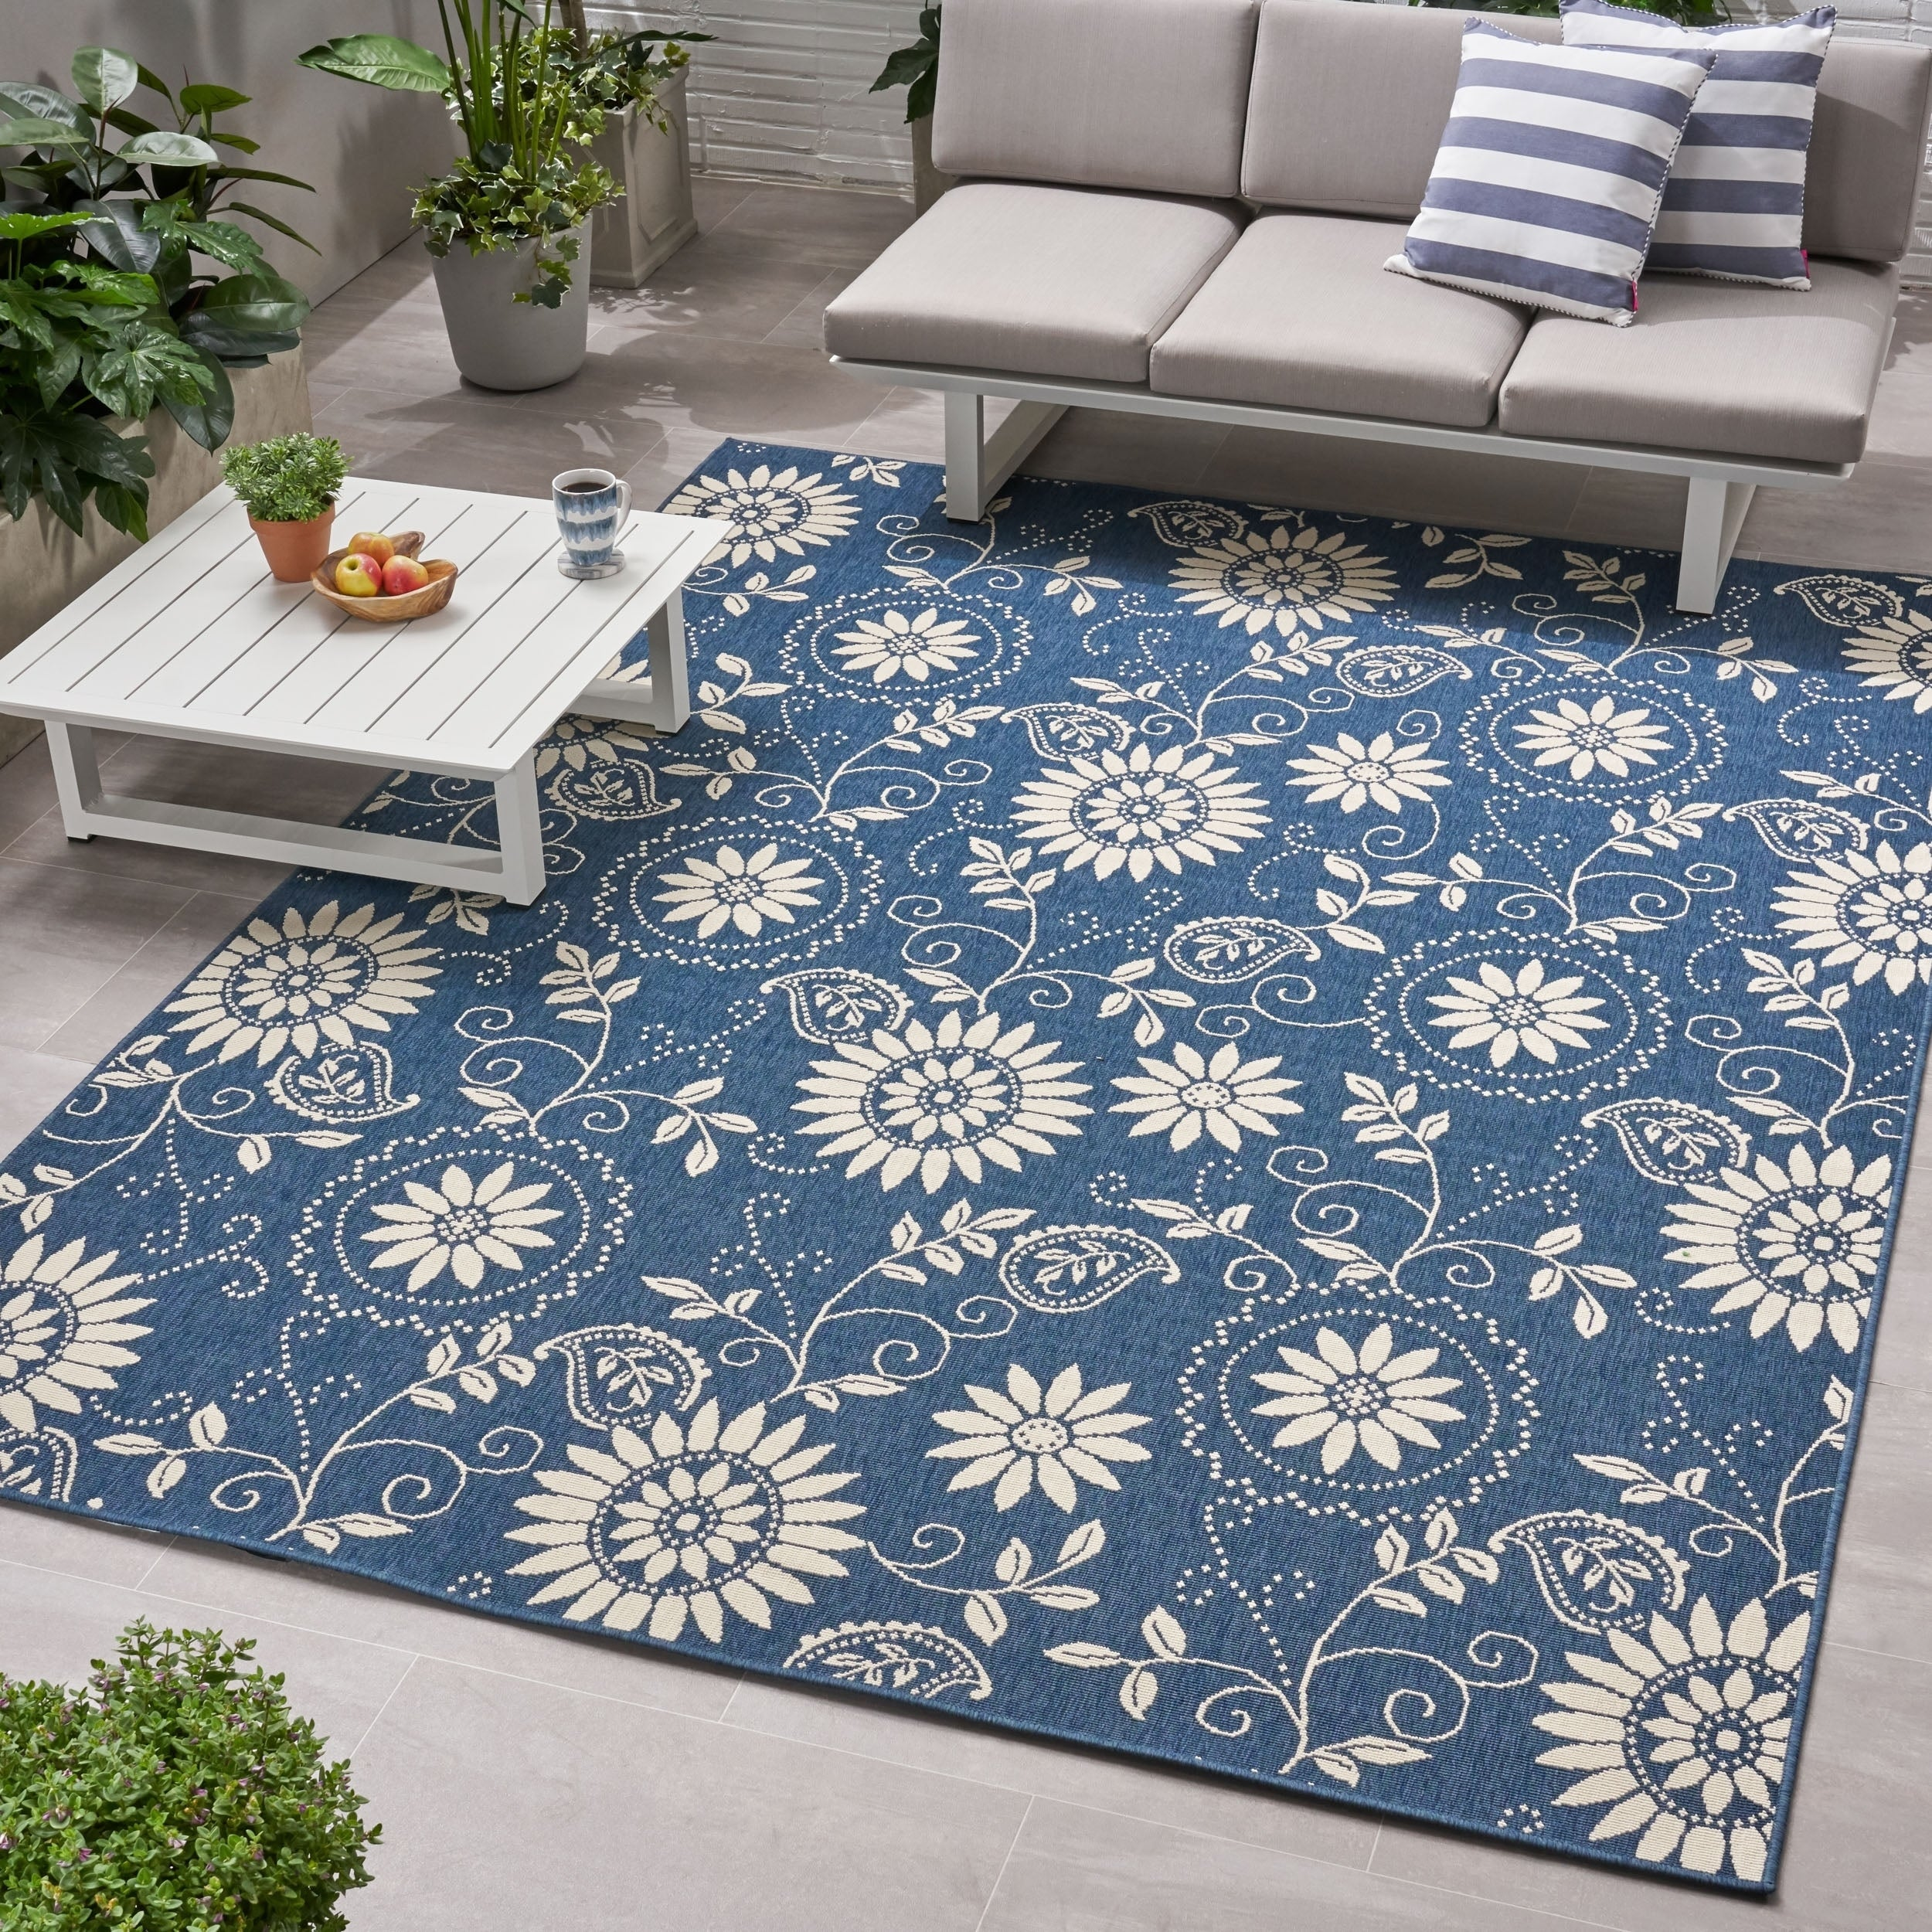 Wildflower Outdoor Botanical Area Rug Blue And Ivory By Christopher Knight Home